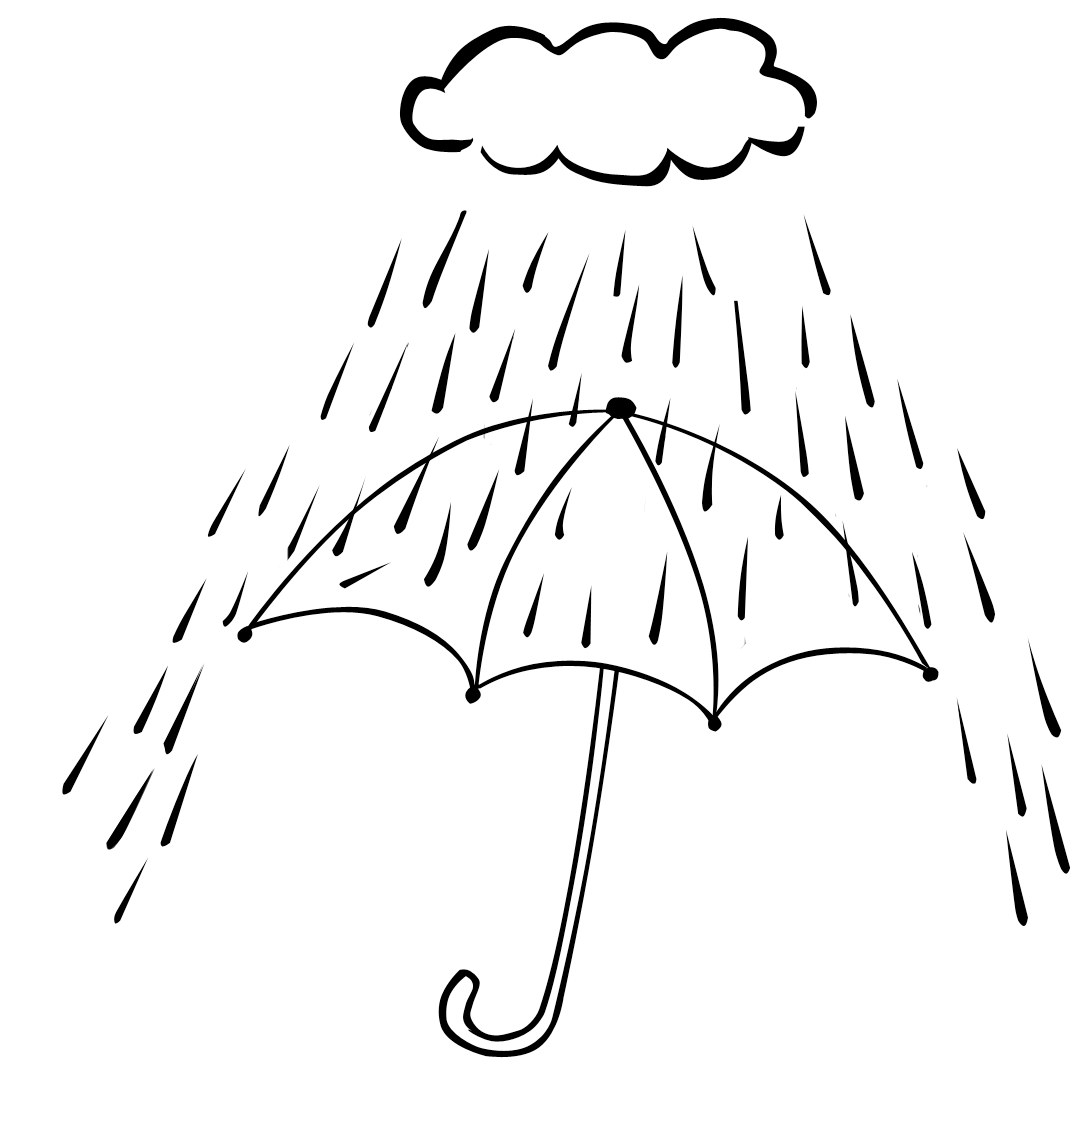 coloring pages for rainy days - photo#30